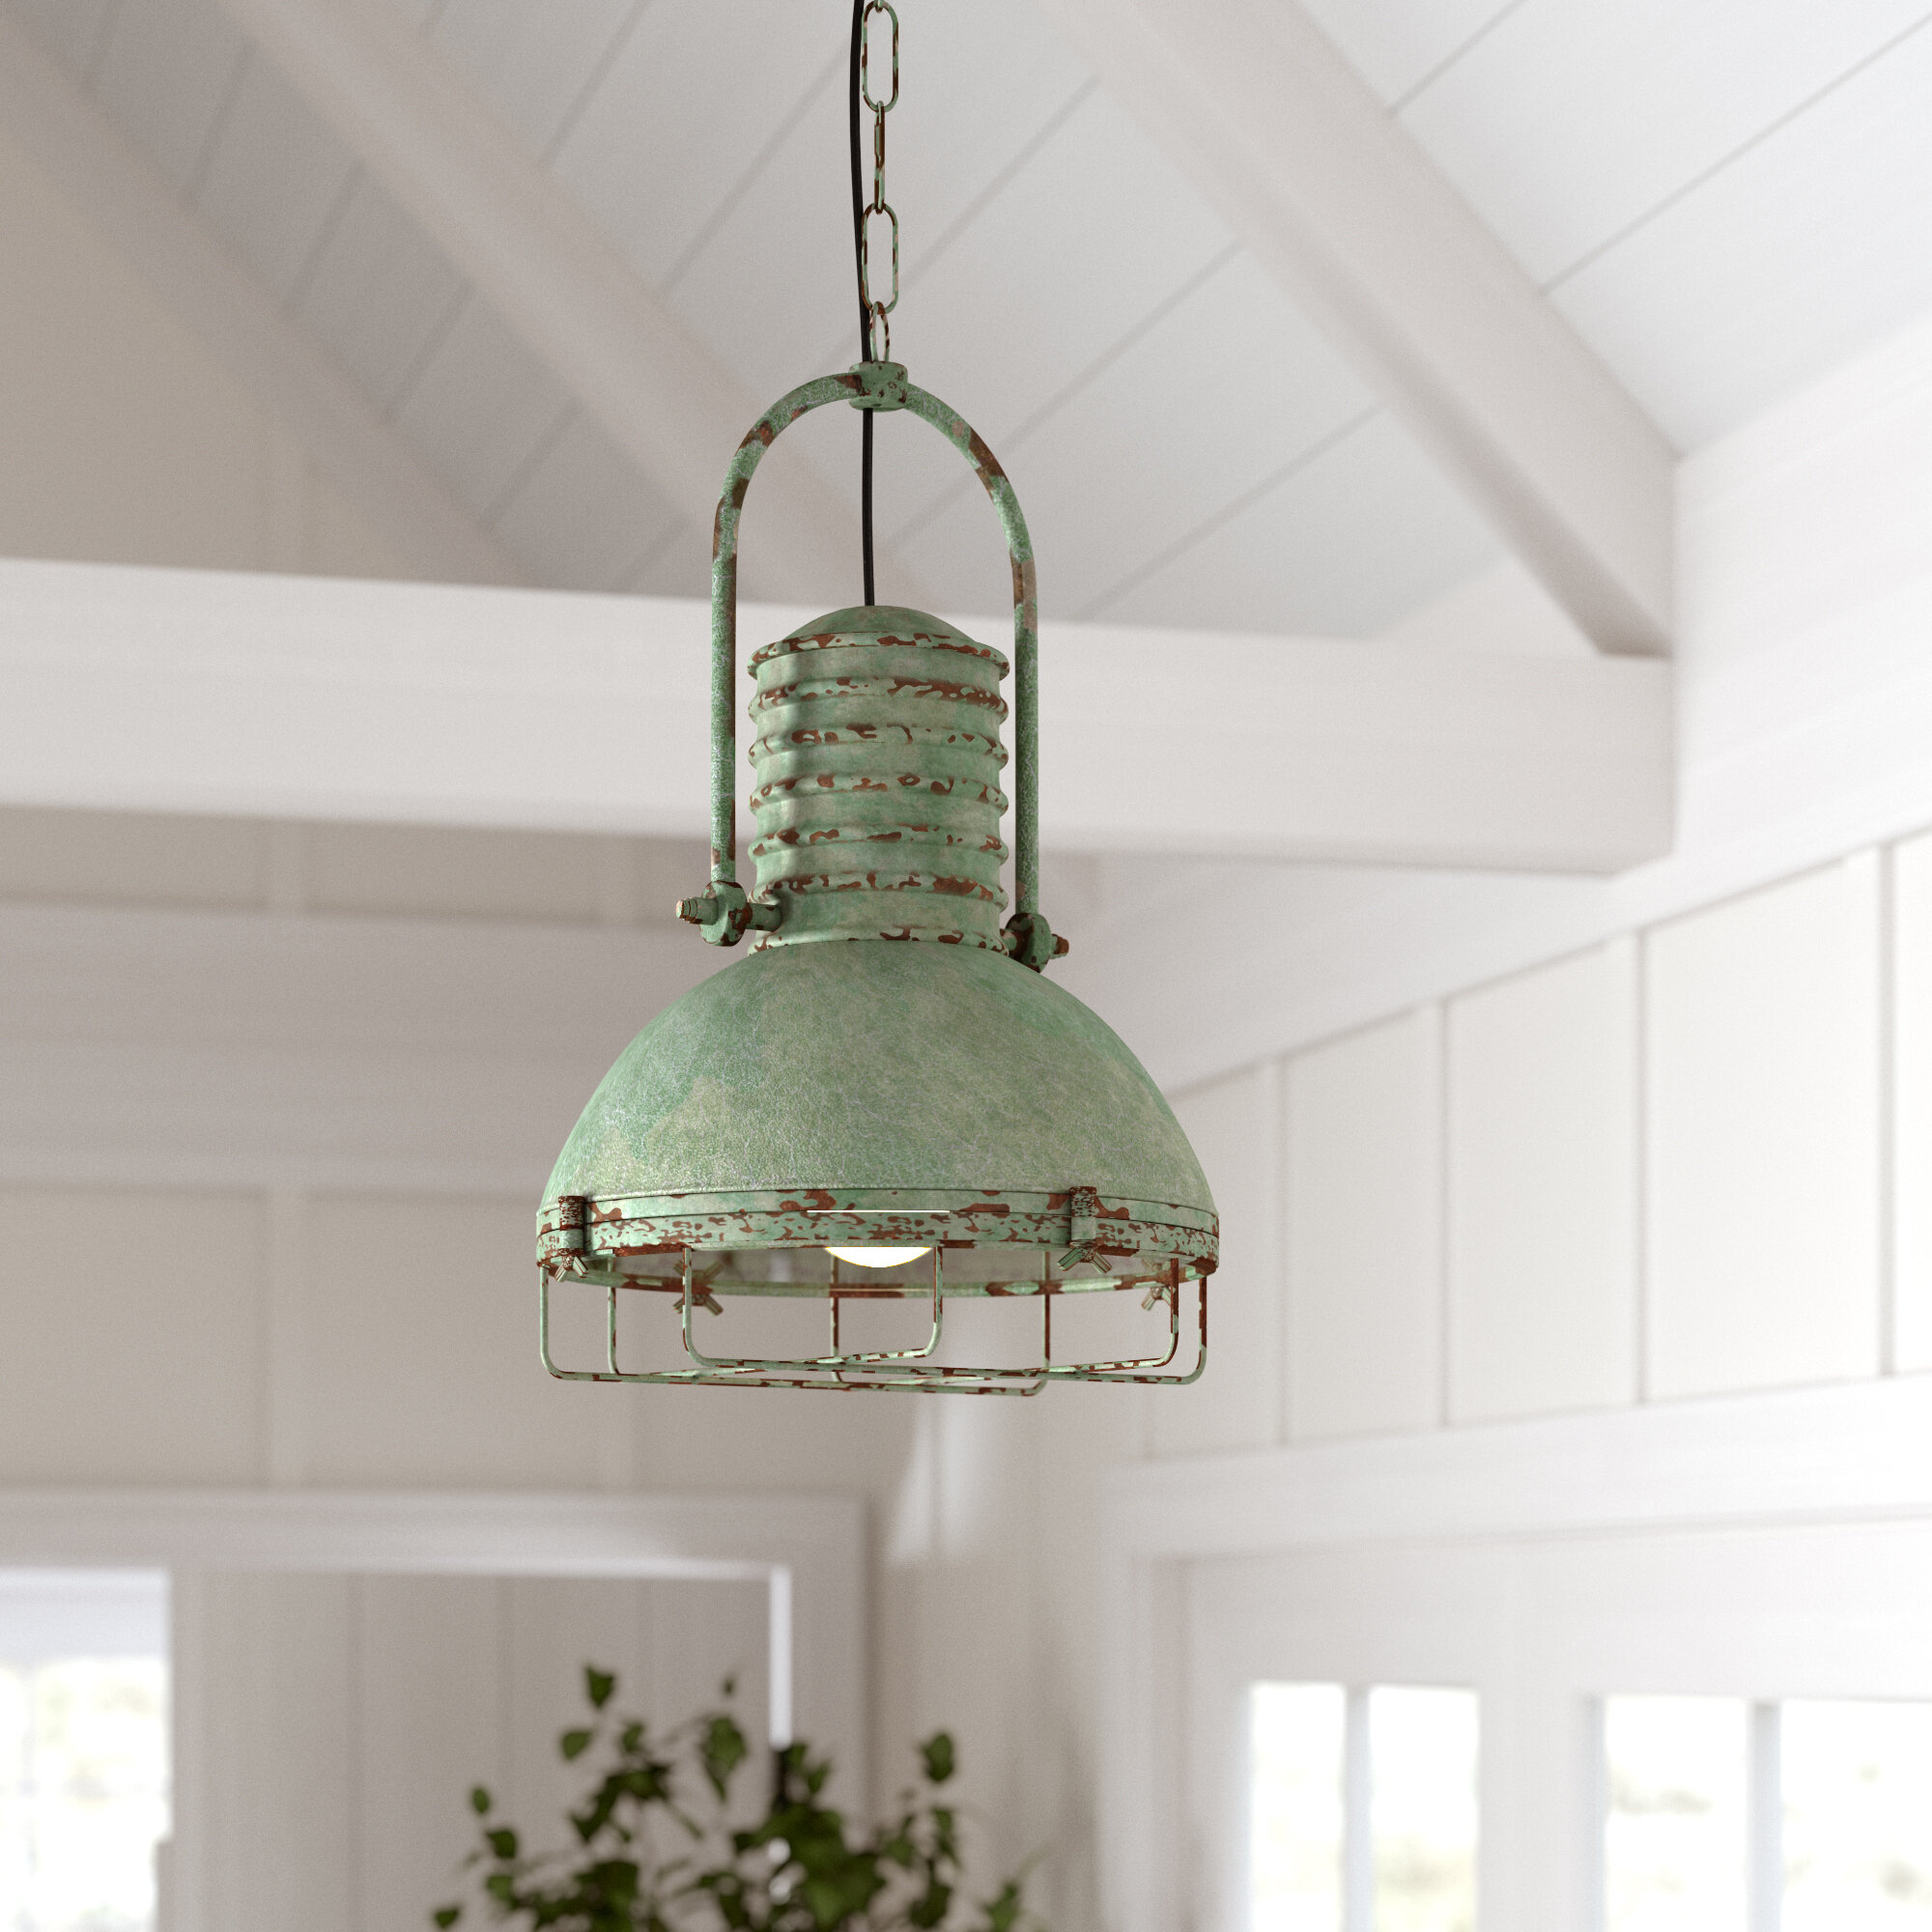 Hillary 1-Light Single Dome Pendant with Monadnock 1-Light Single Dome Pendants (Image 15 of 30)